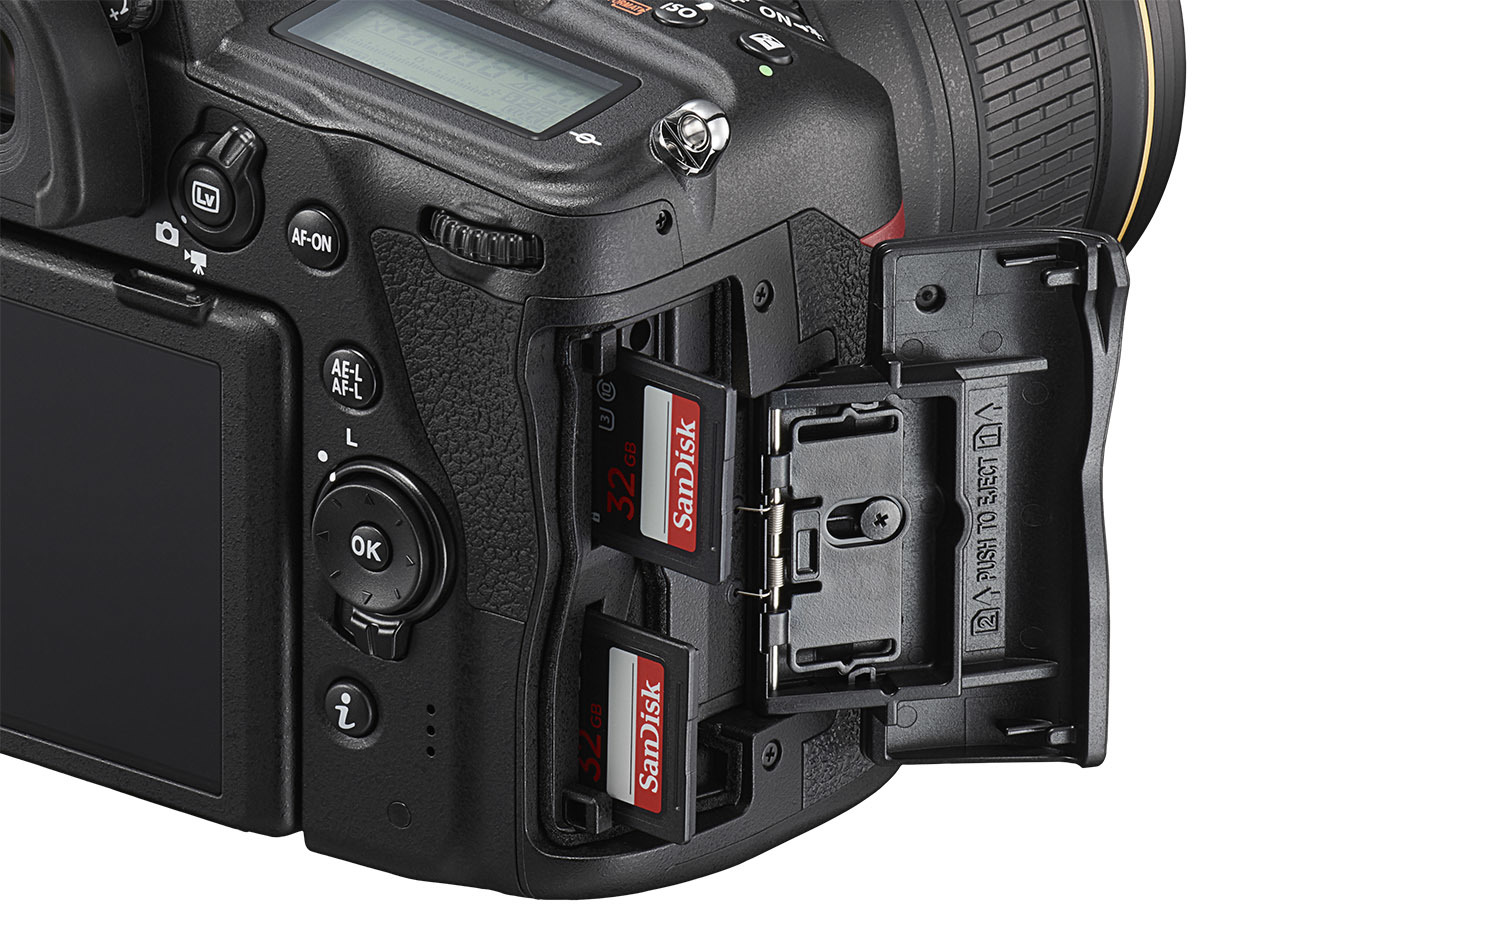 D780_24_120_4_double_slot_with 2 SD cards kopi.jpg